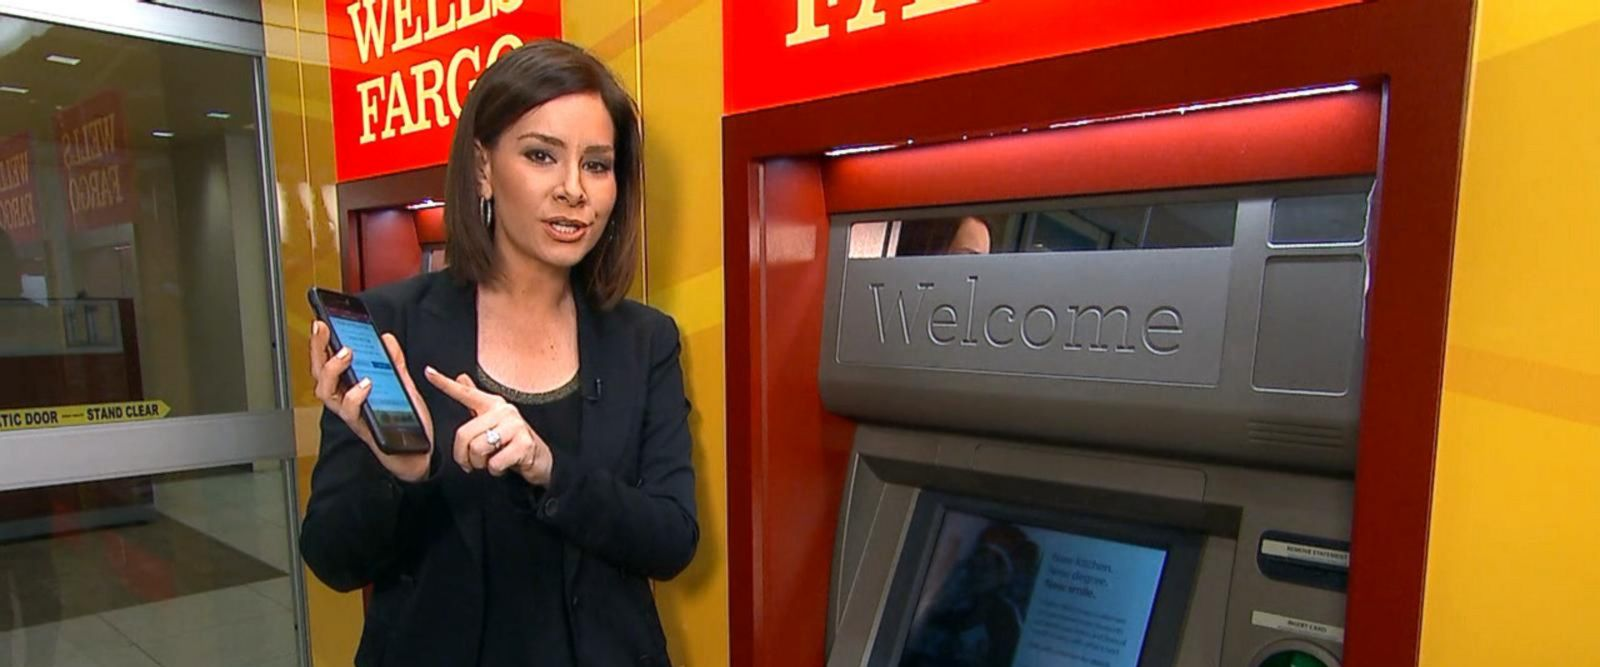 VIDEO: Wells Fargo bank debuts new cardless ATM machines